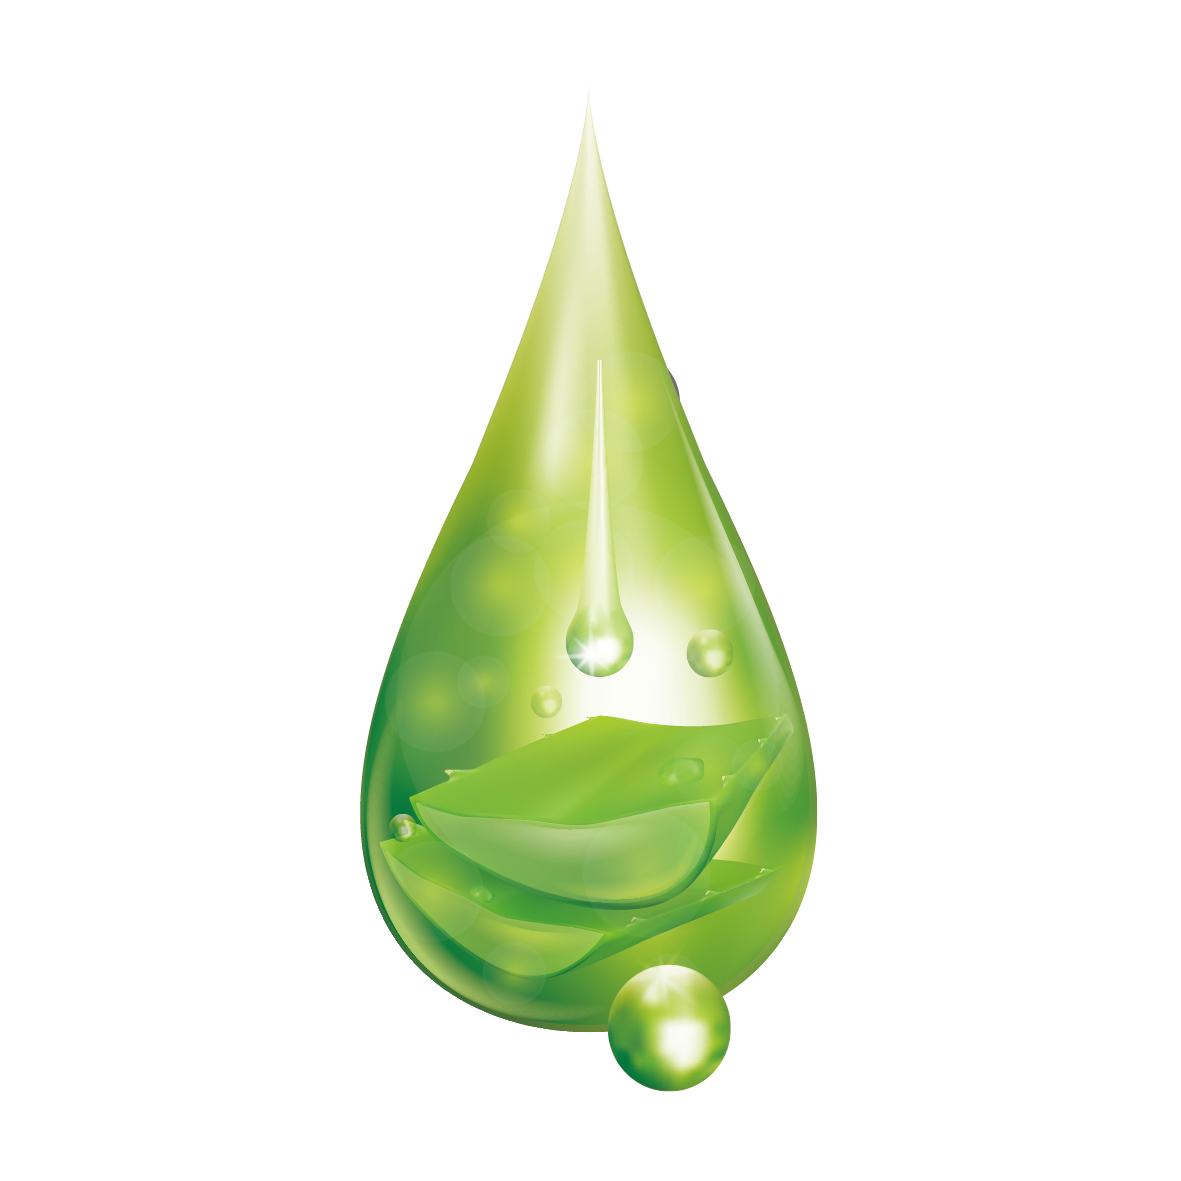 Aloevera Drop Png Image Lens Flare Photoshop Lens Flare Png